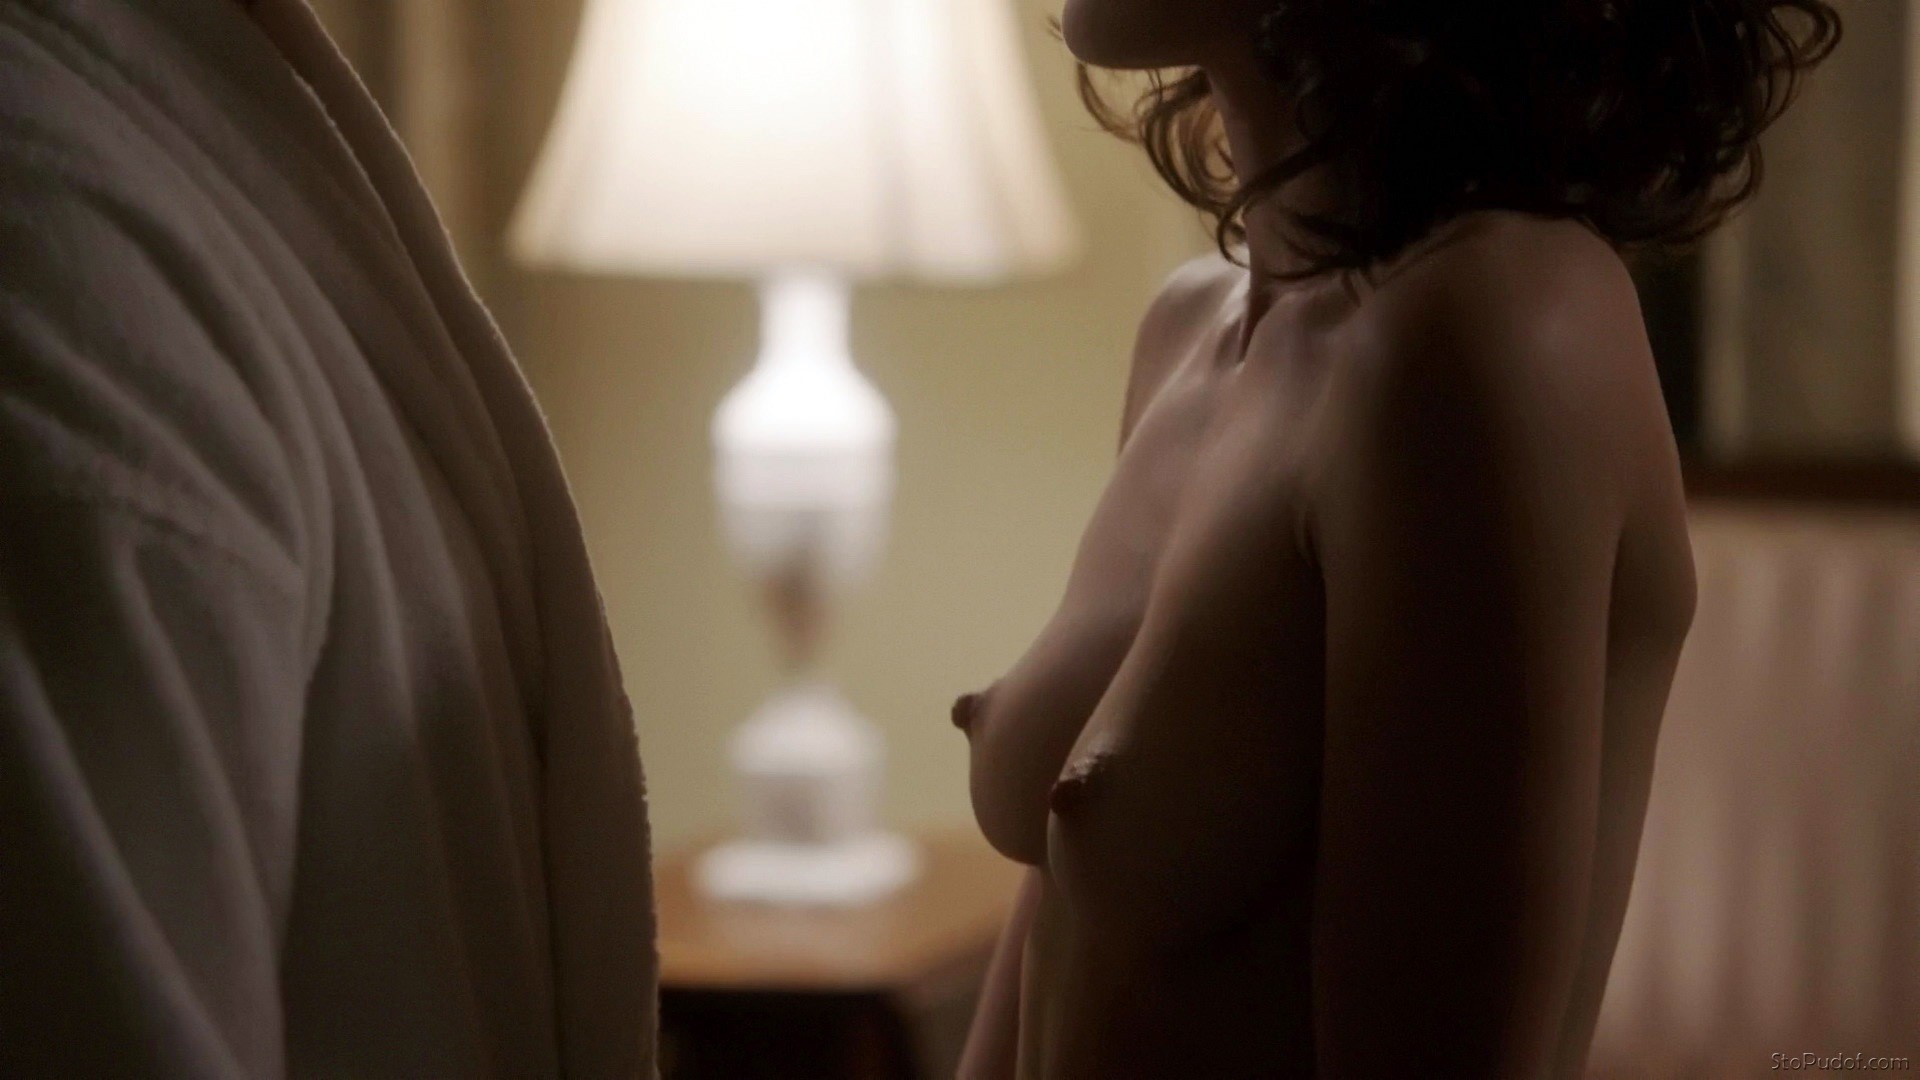 Lizzy caplan nude boobs and sex in masters of sex series